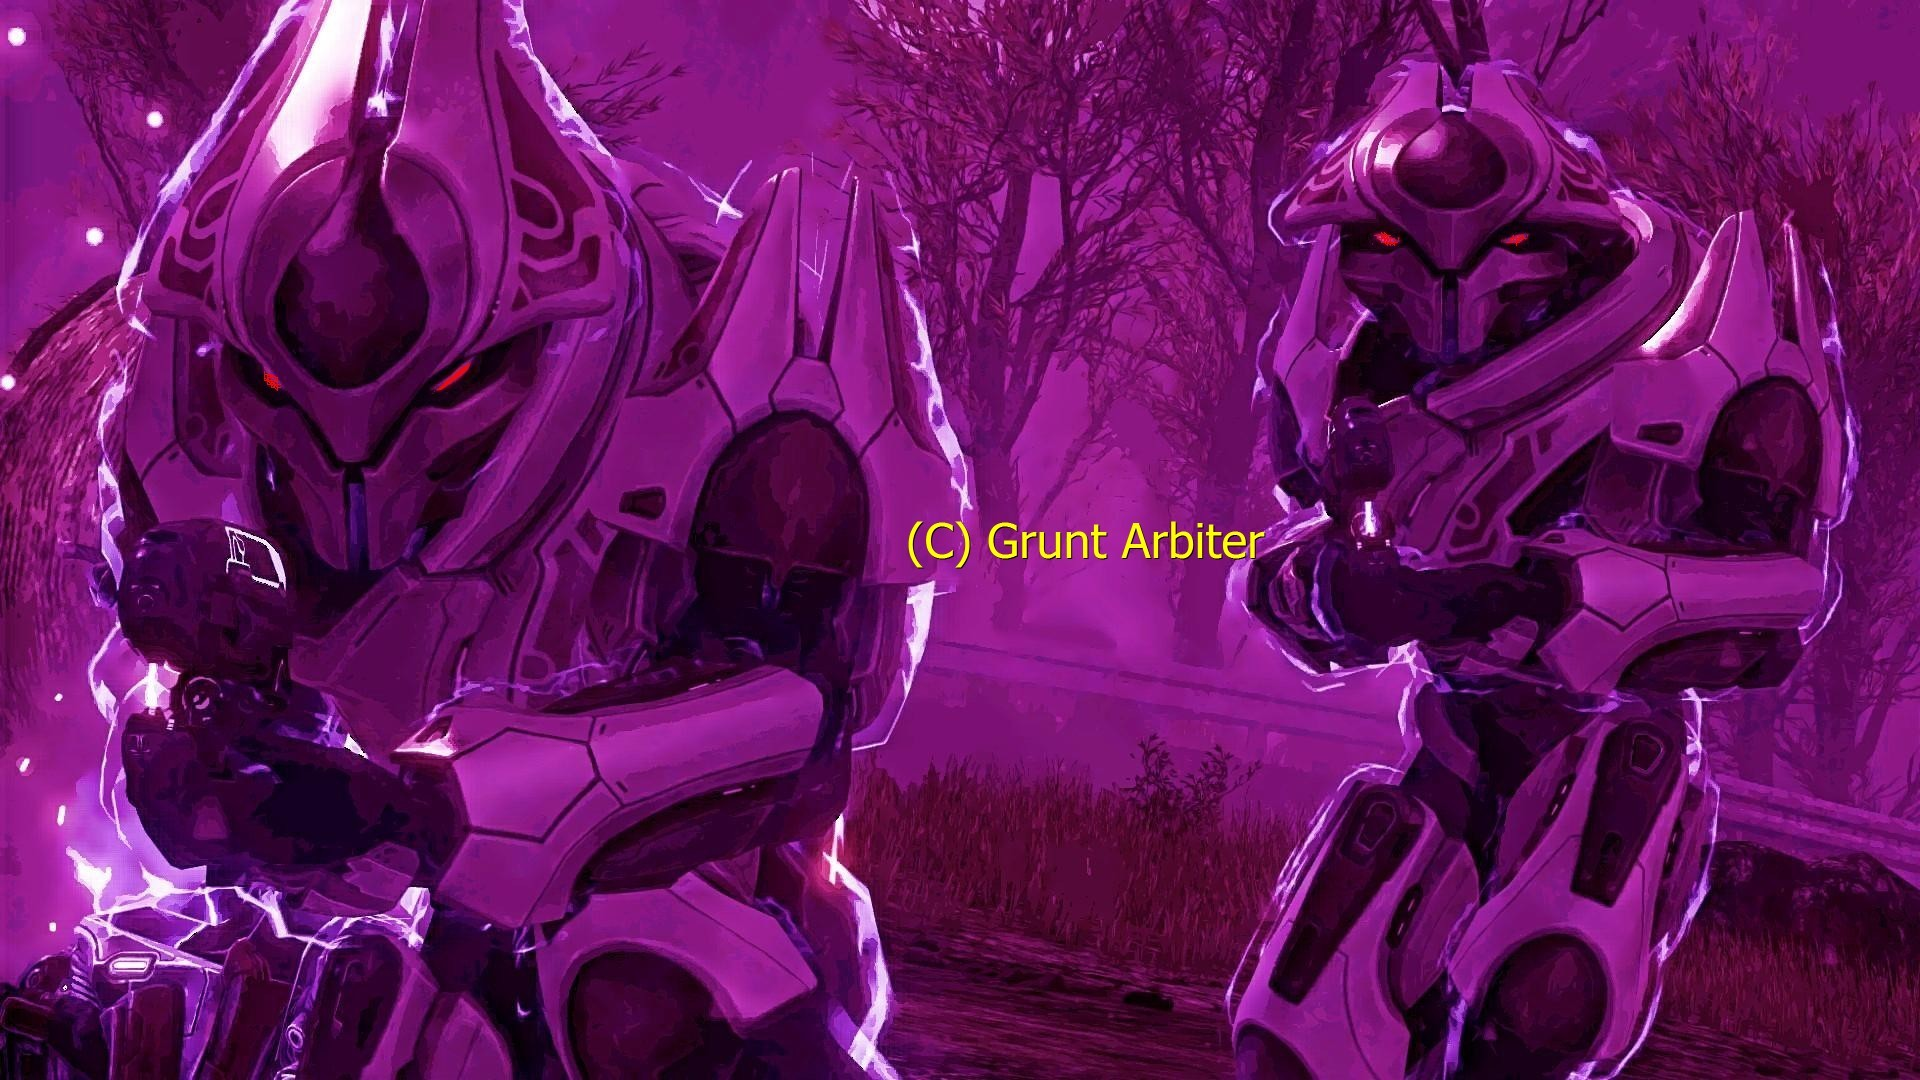 Res: 1920x1080, Halo images Halo Reach: Pink Sangheili Ultra HD wallpaper and background  photos